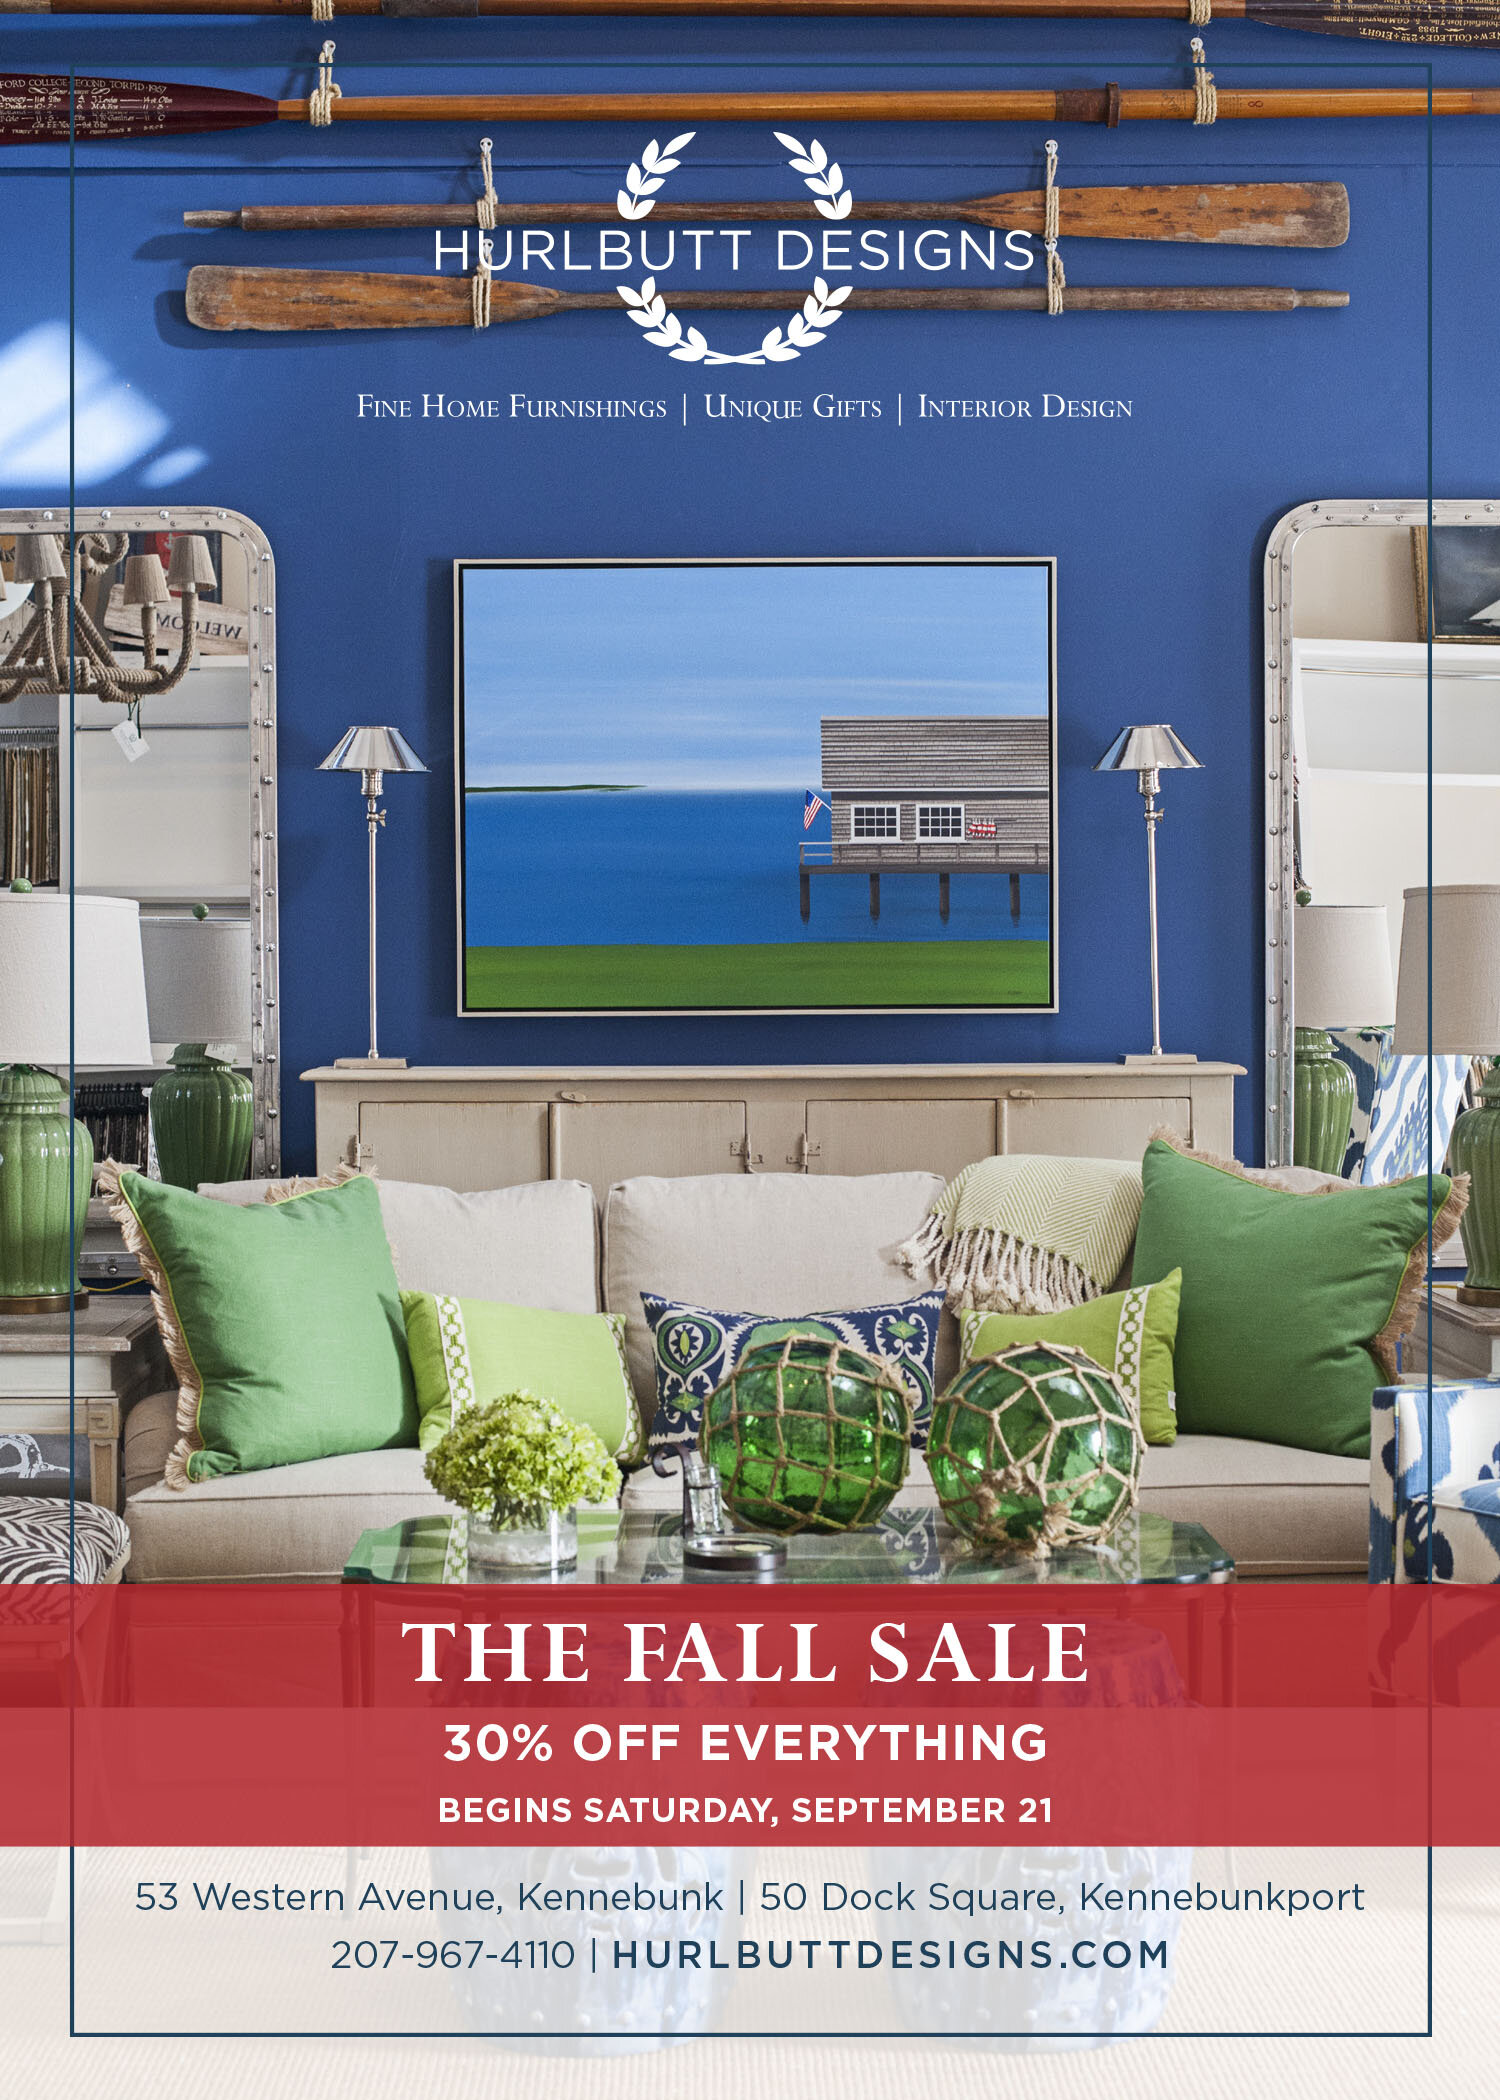 Save 30% On Everything During Our Fall Sale - Shop designer furniture, lighting, accessories, and more at BOTH store locations during our Fall Sale! Begins September 21, 2019.Happy Shopping!